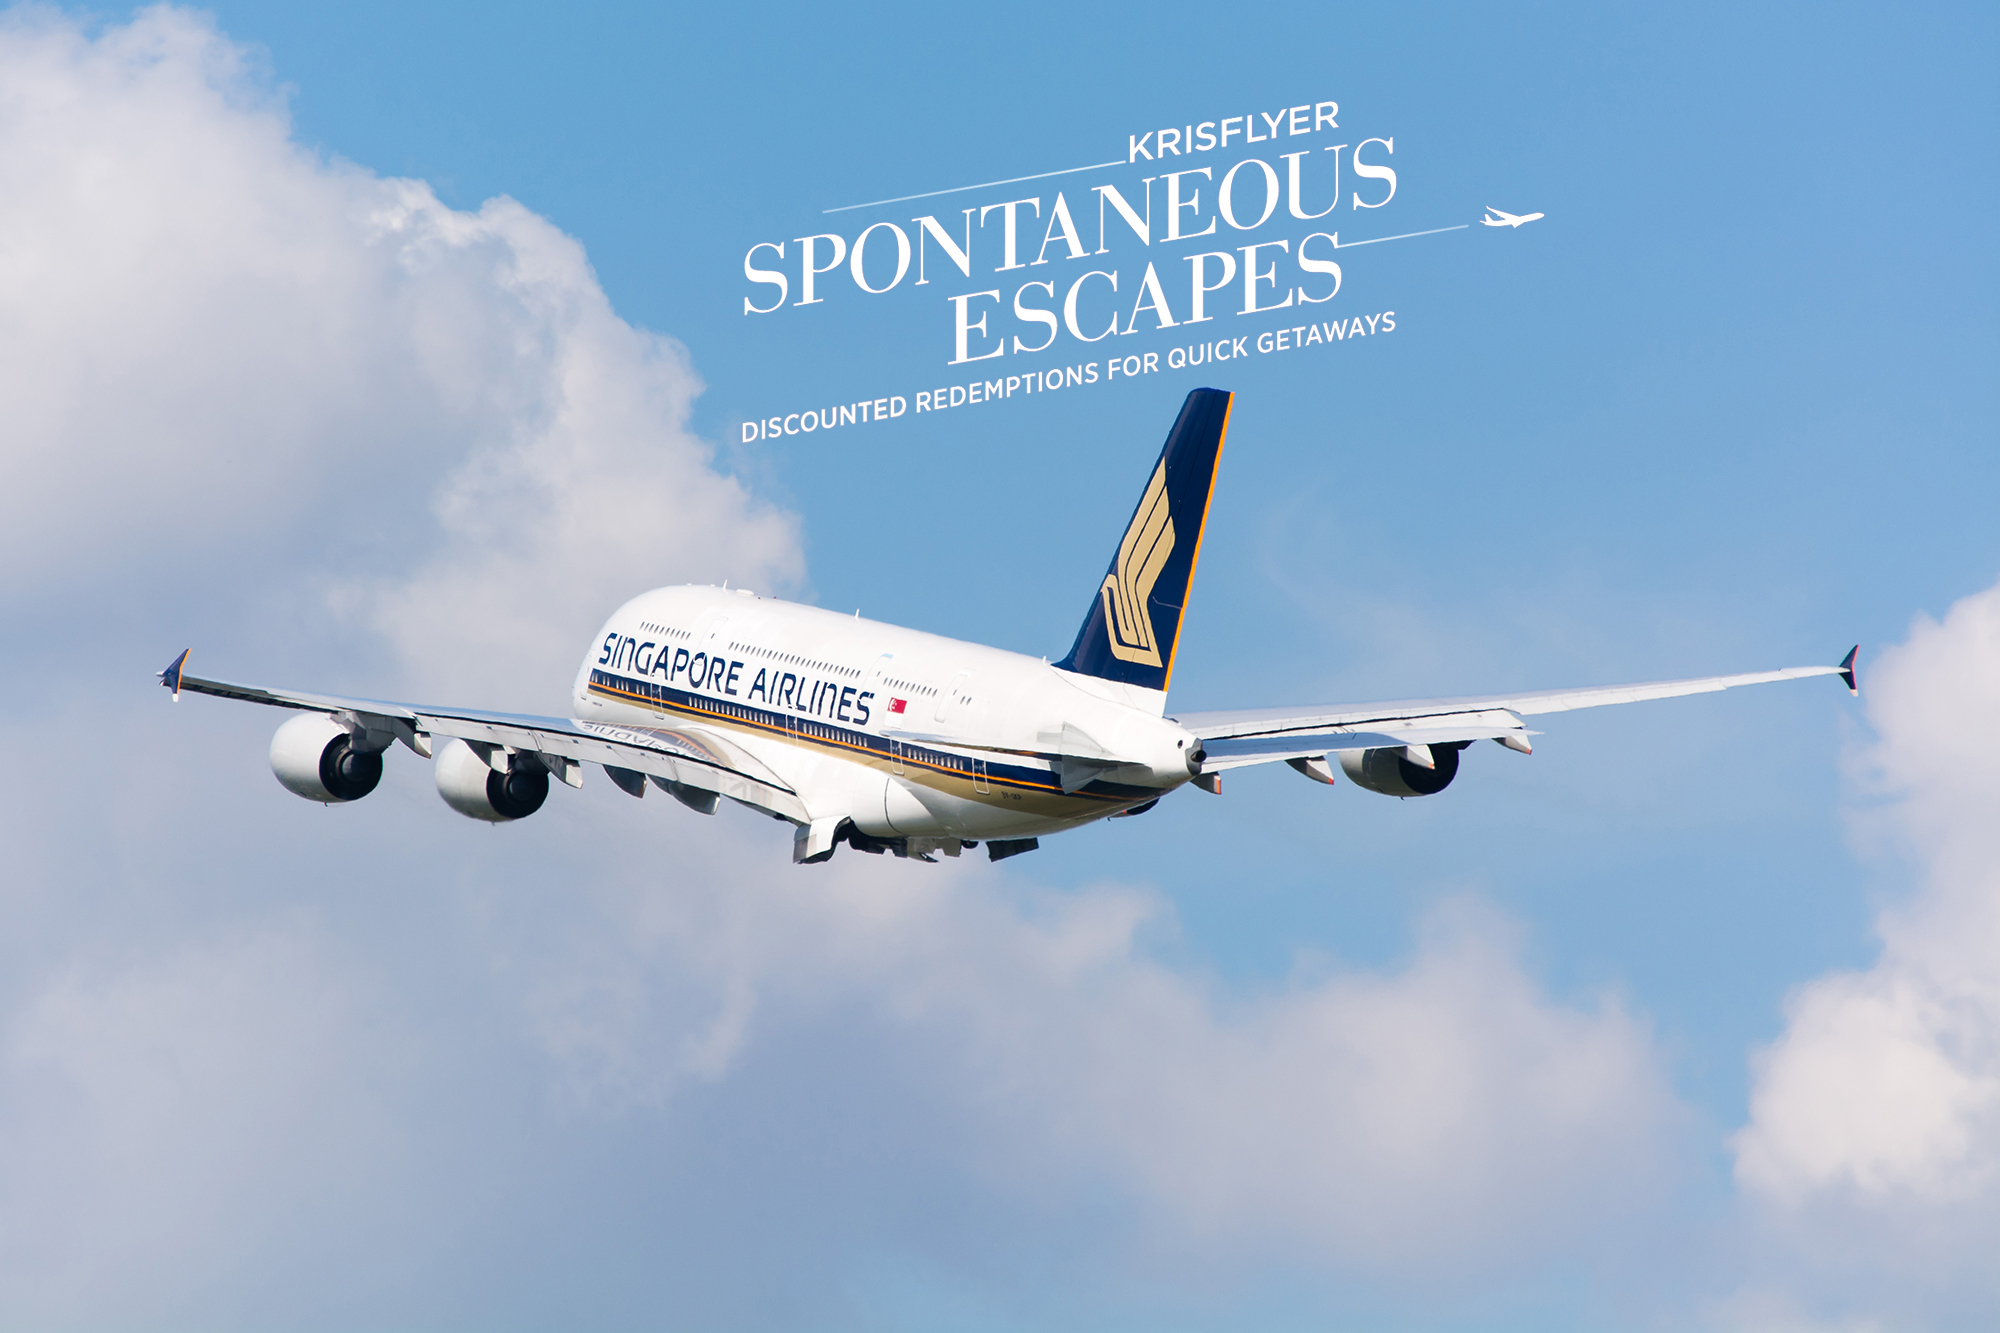 KrisFlyer Spontaneous Escapes October 2019 offers